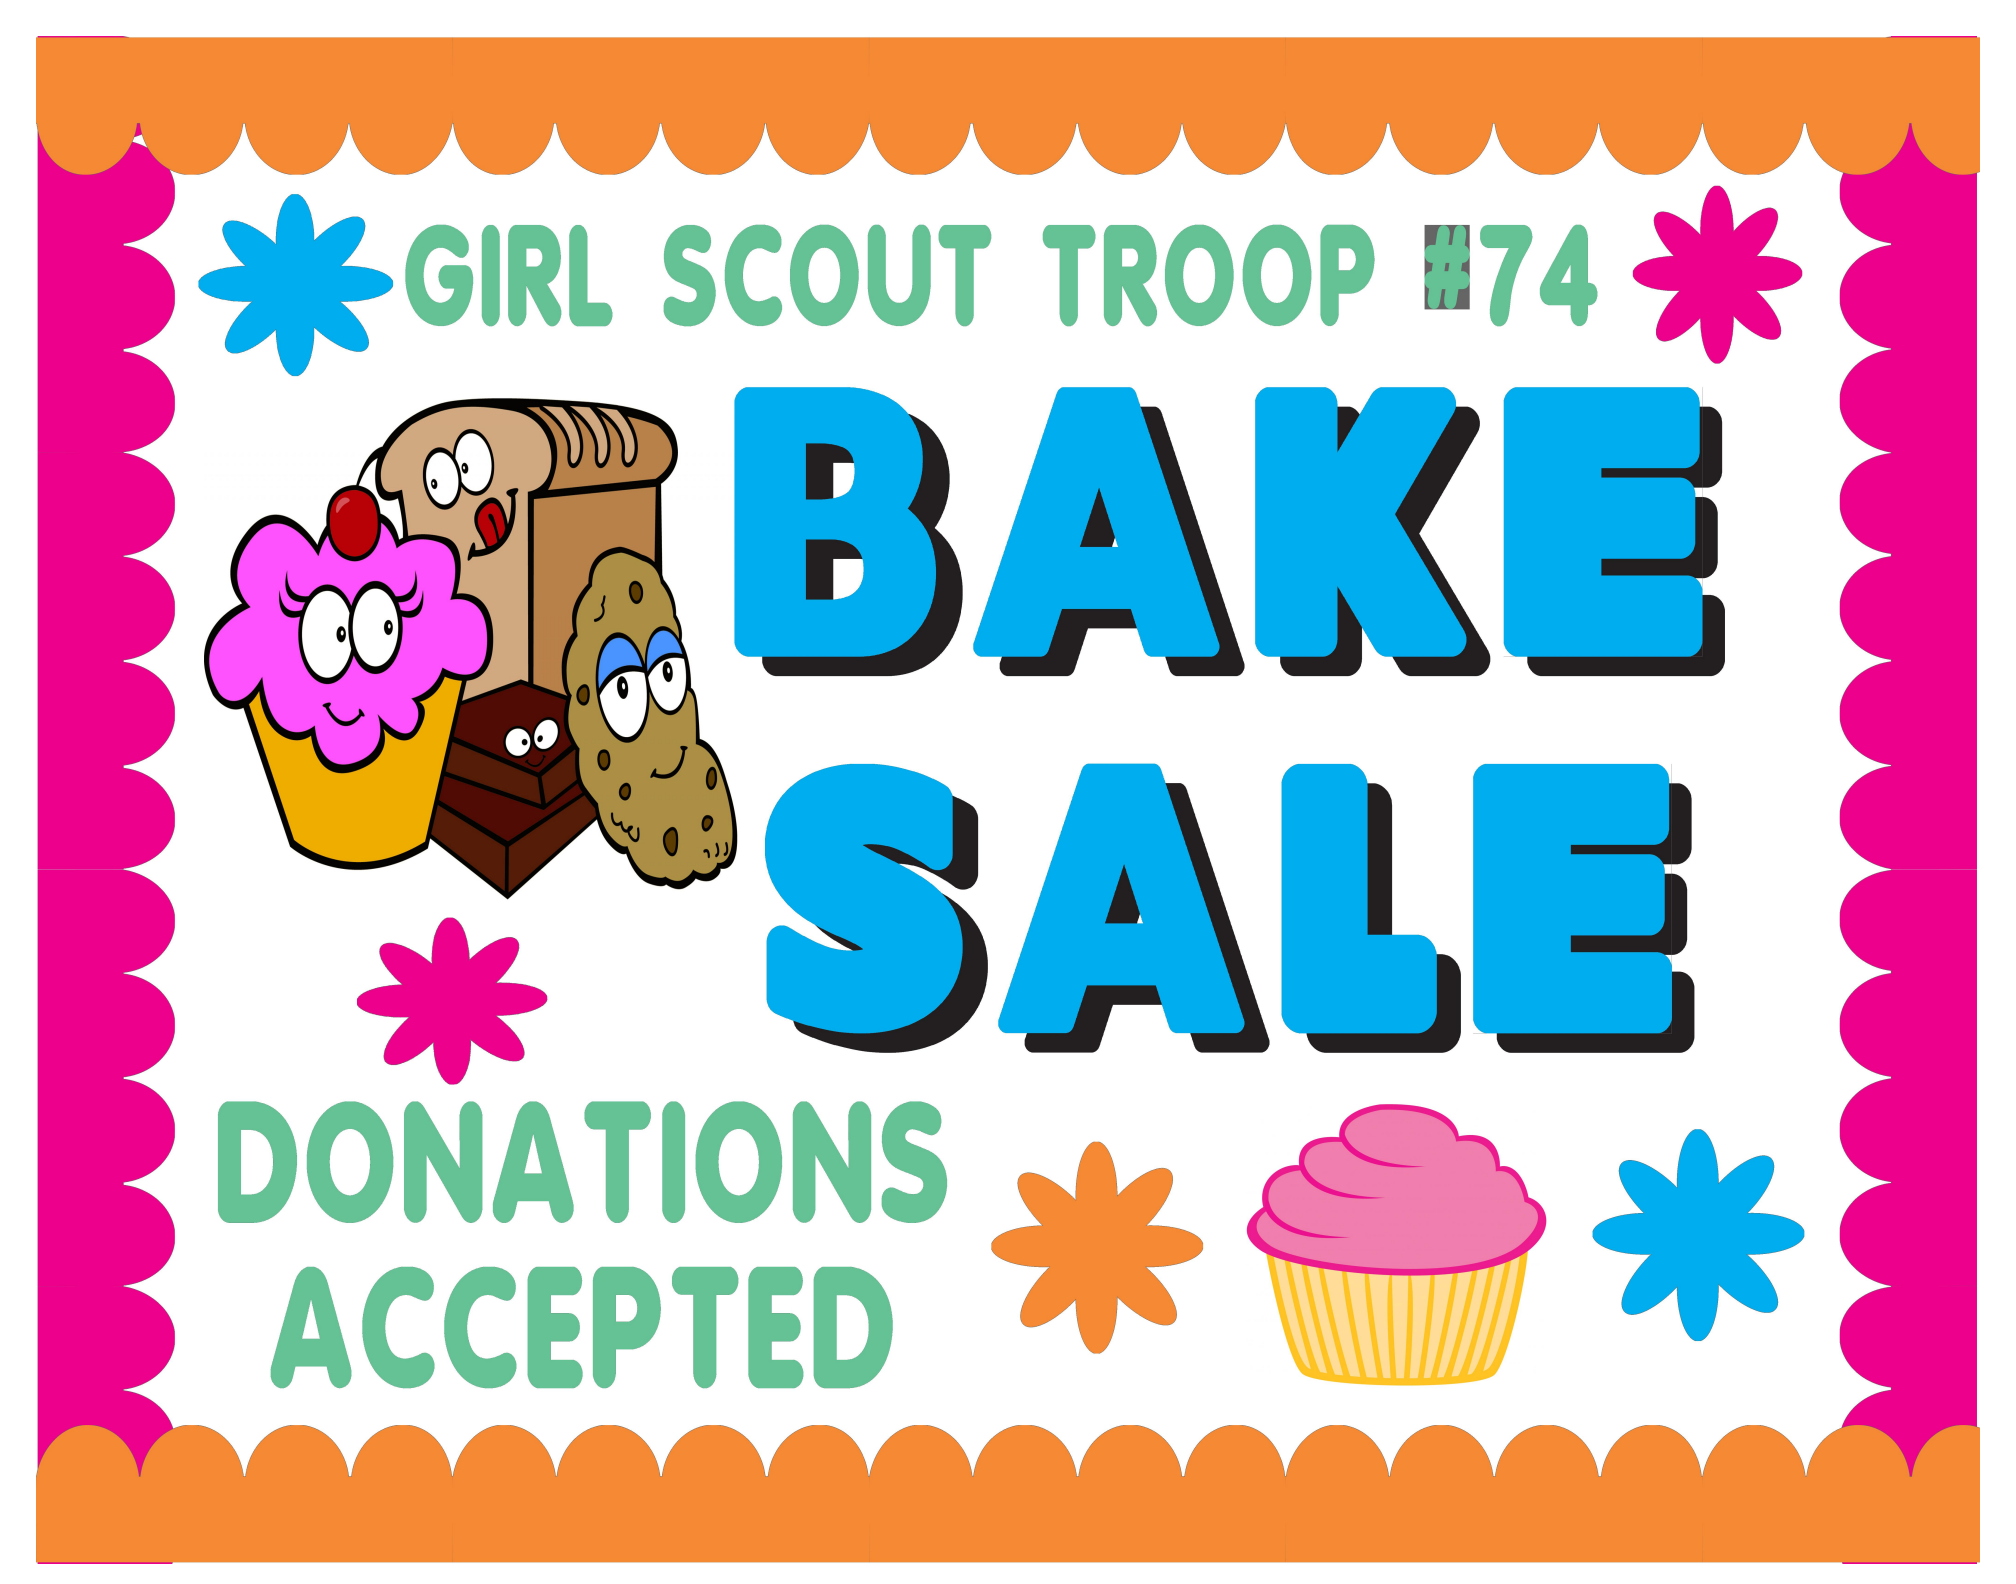 best images about fundraising poster ideas girl 17 best images about fundraising poster ideas girl scout cookies raise money and bake